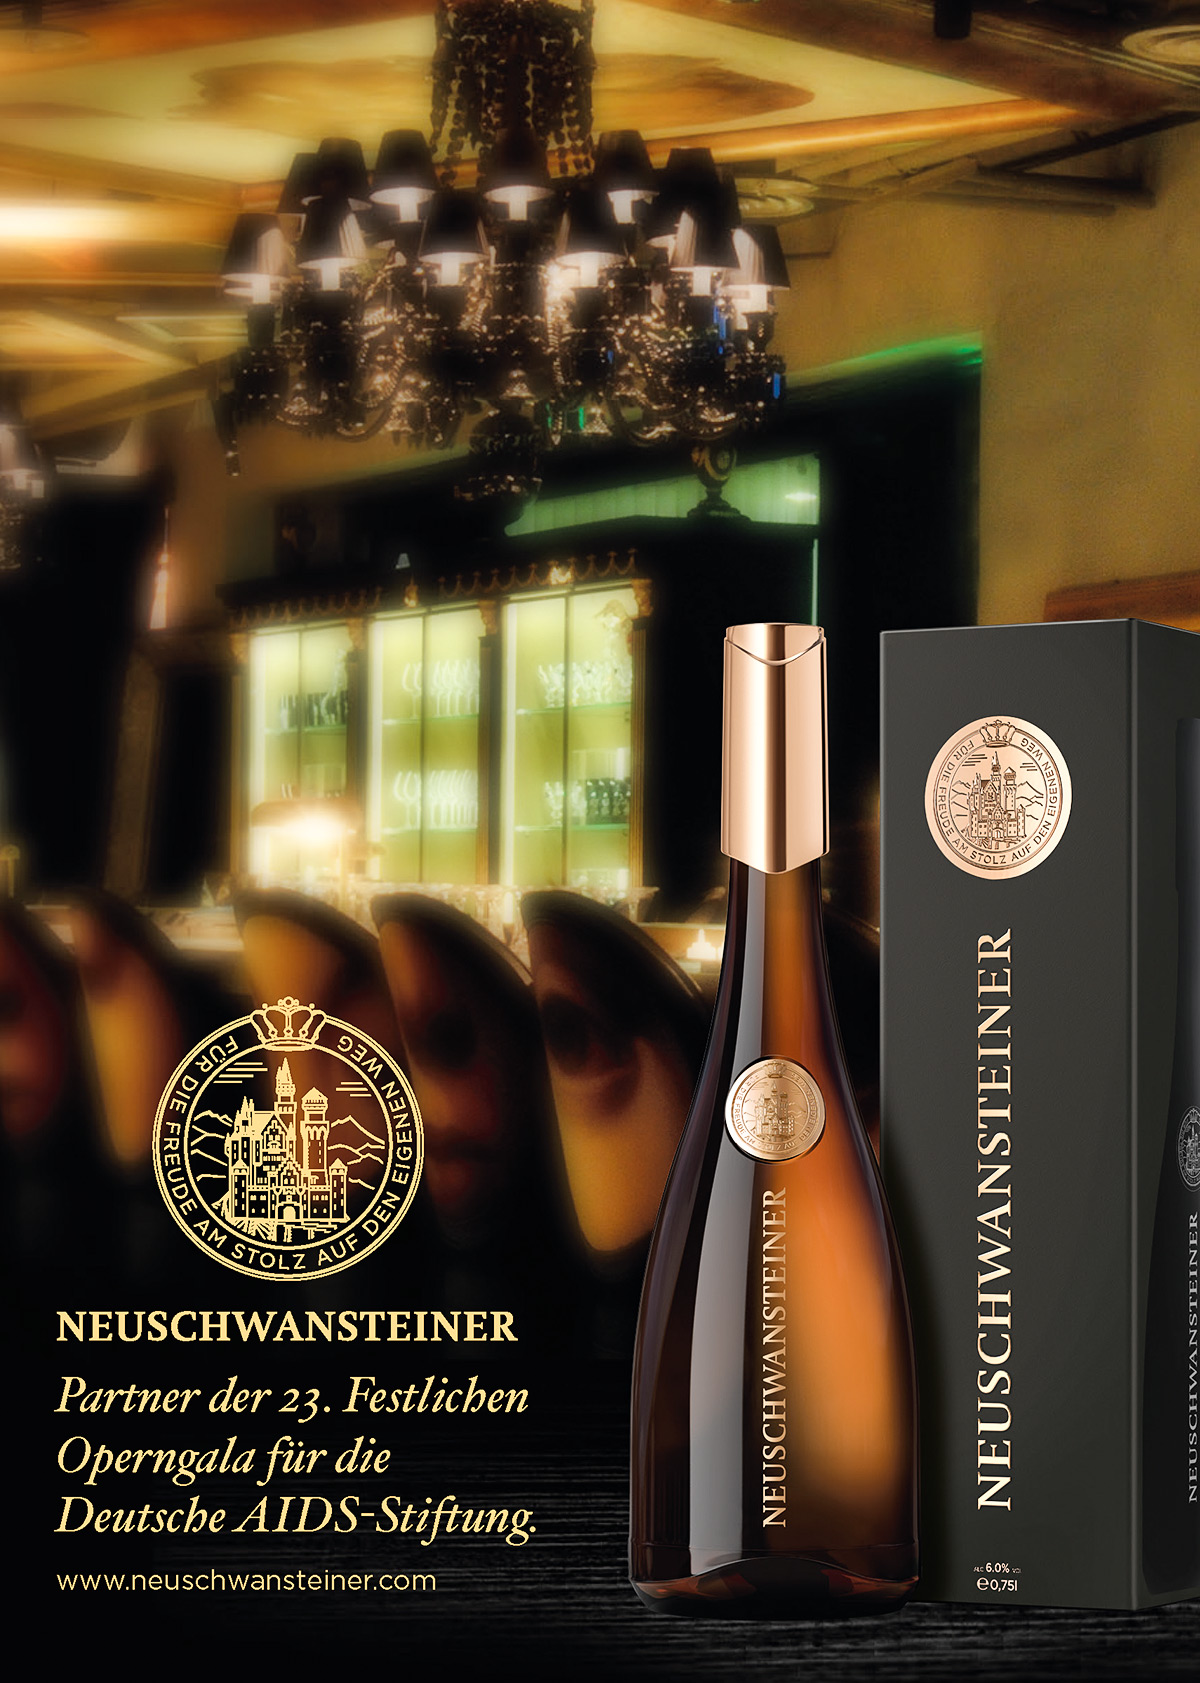 23-festive-opera-gala-berlin-the-german-aids-foundation-aids-gala-supported-by-neuschwansteiner-flyer